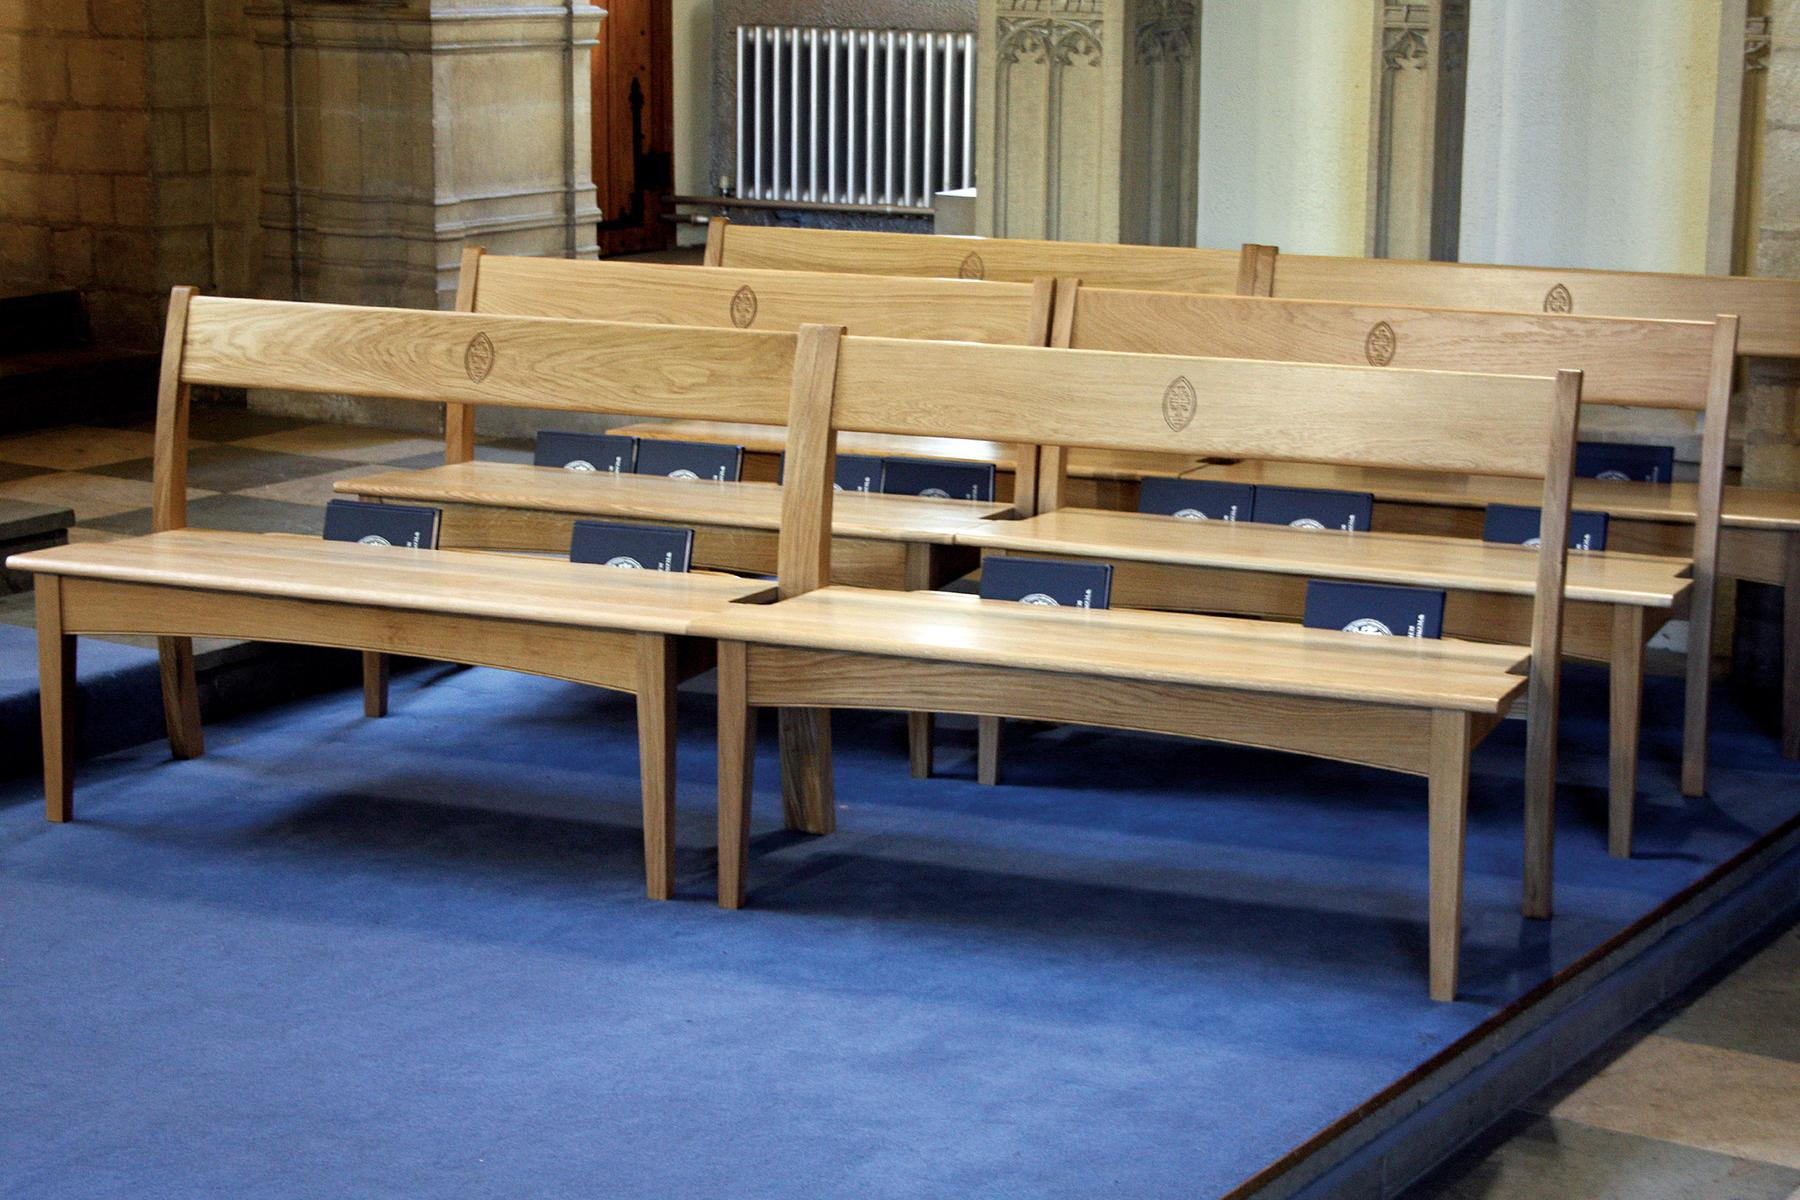 Wycombe Abbey School benches